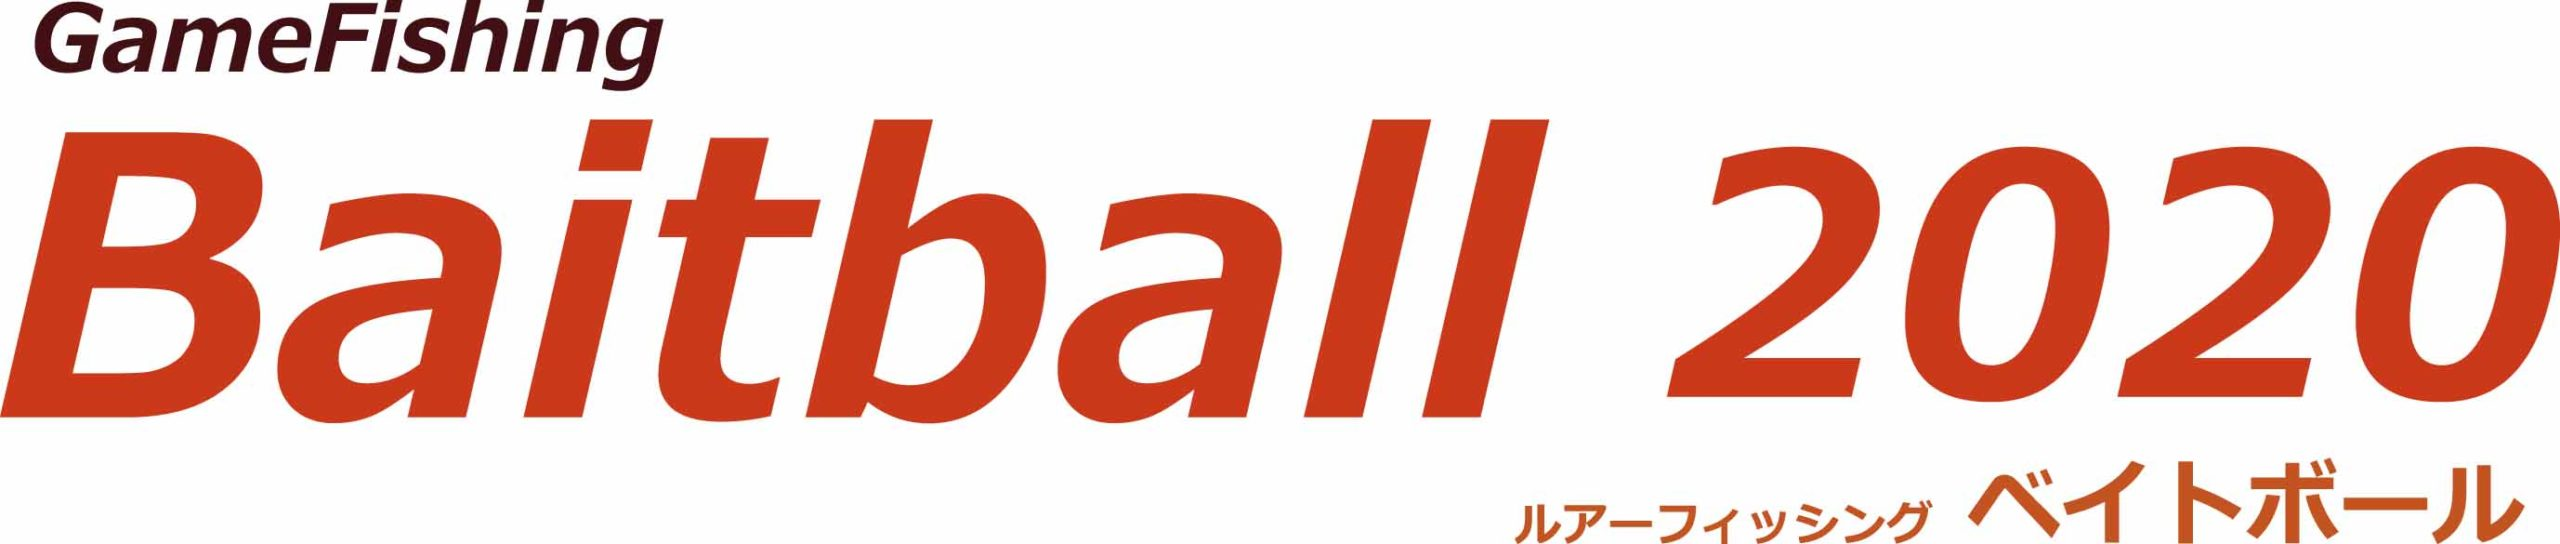 Gamefishing  Baitball